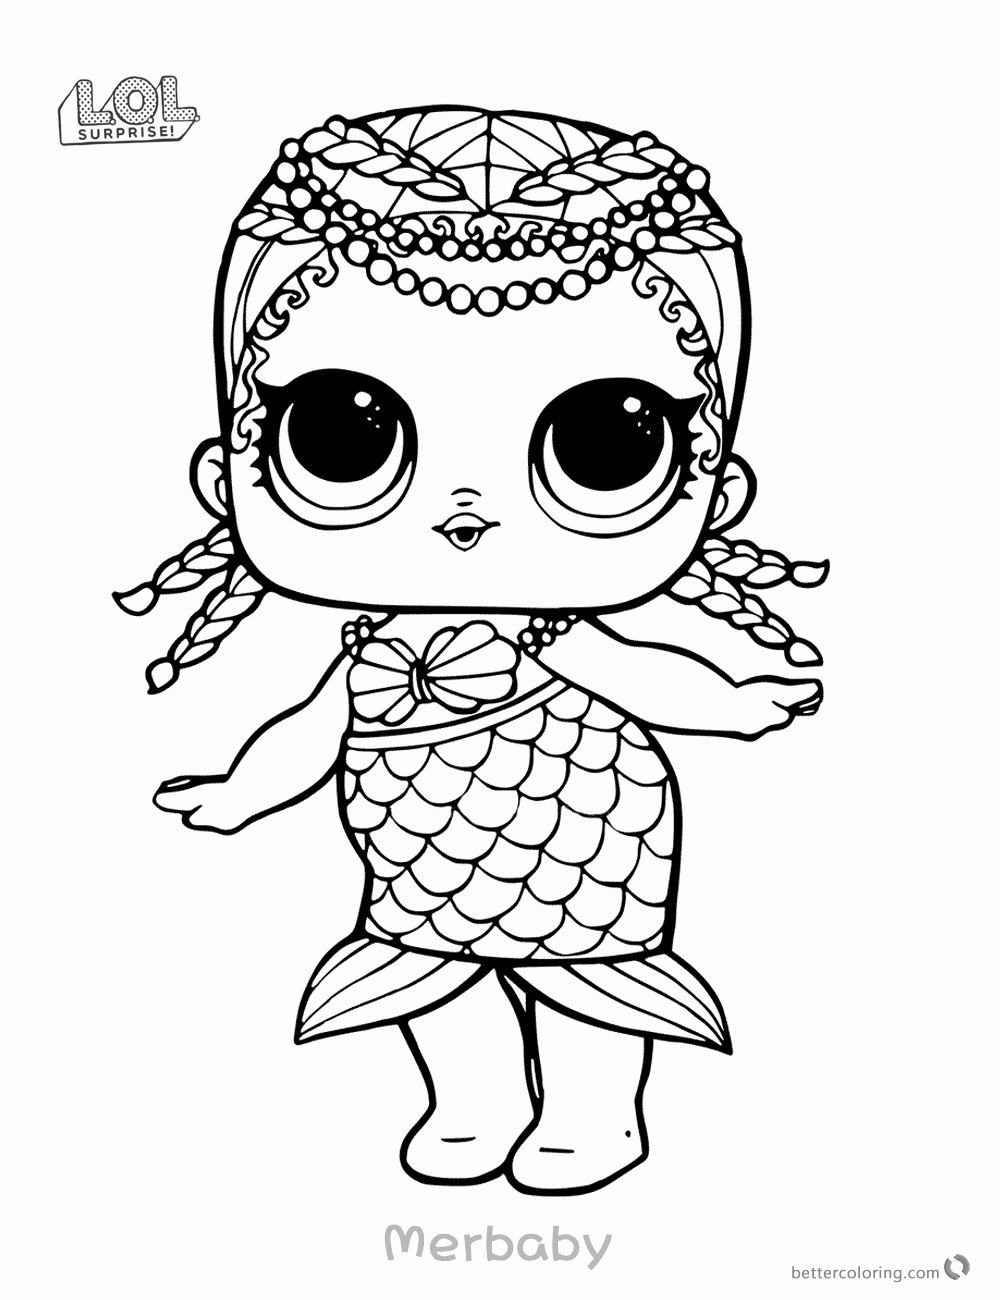 Lol Unicorn Coloring Pages Awesome Lol Doll Coloring Pages Mermaid Coloring Pages Unicorn Coloring Pages Cartoon Coloring Pages